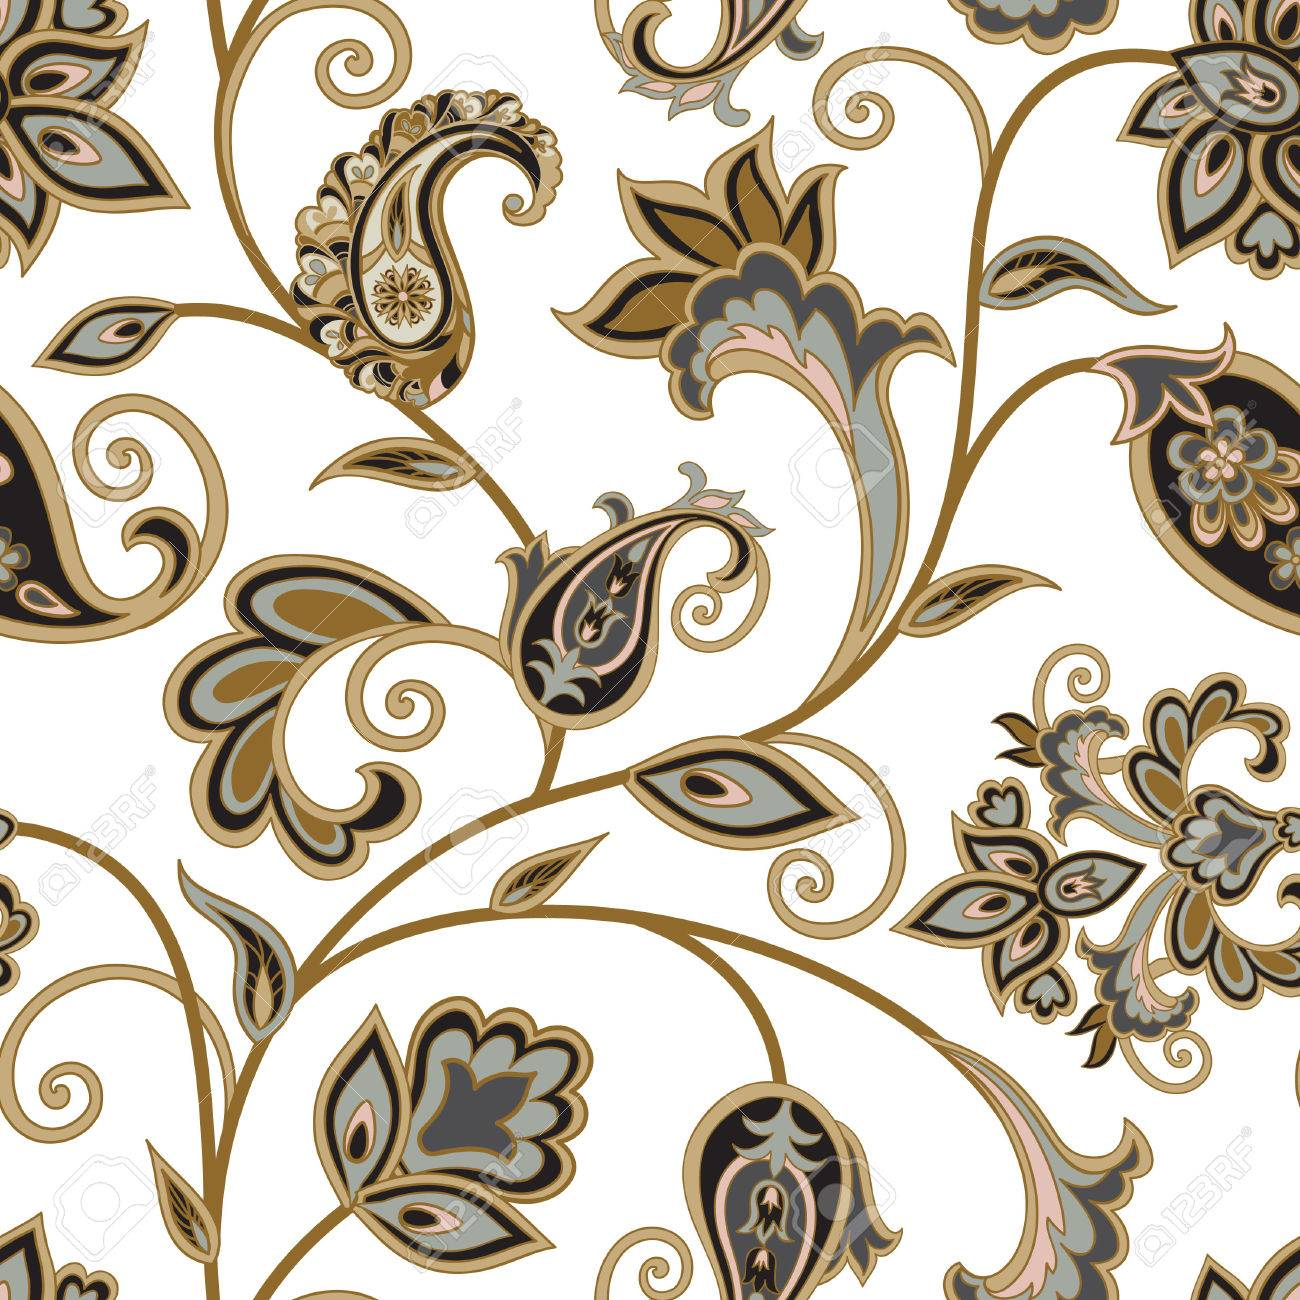 Flourish tiled pattern. Floral oriental ethnic background. Arabic ornament with fantastic flowers and leaves. Wonderland motives of the paintings of ancient Indian fabric patterns. - 64084316